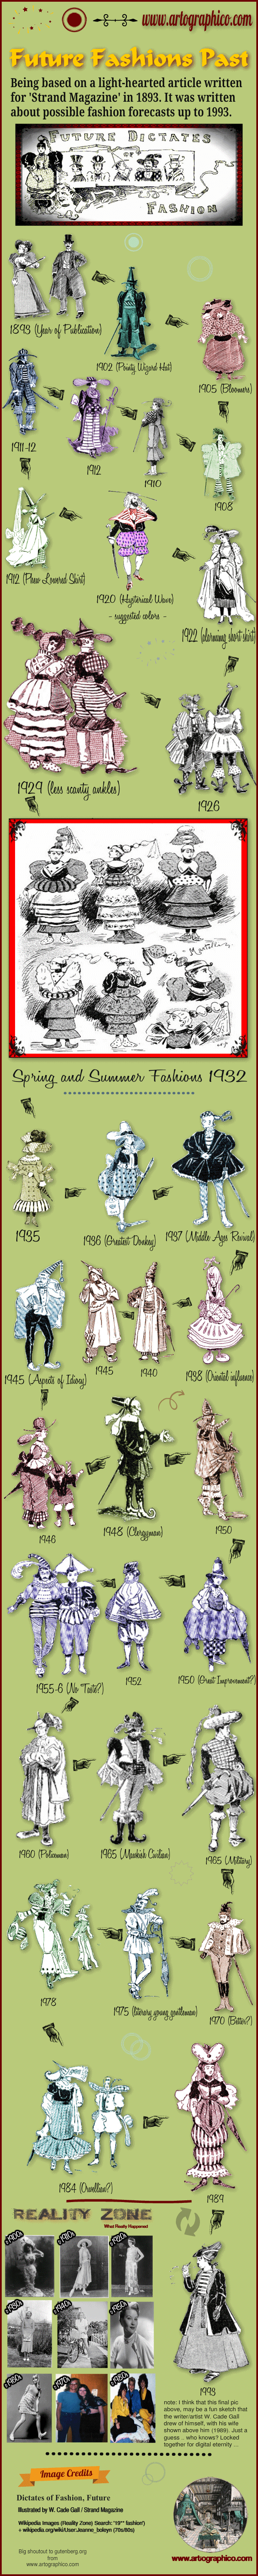 100 Years - Fashion Fiction vs Fact - artographico PNG